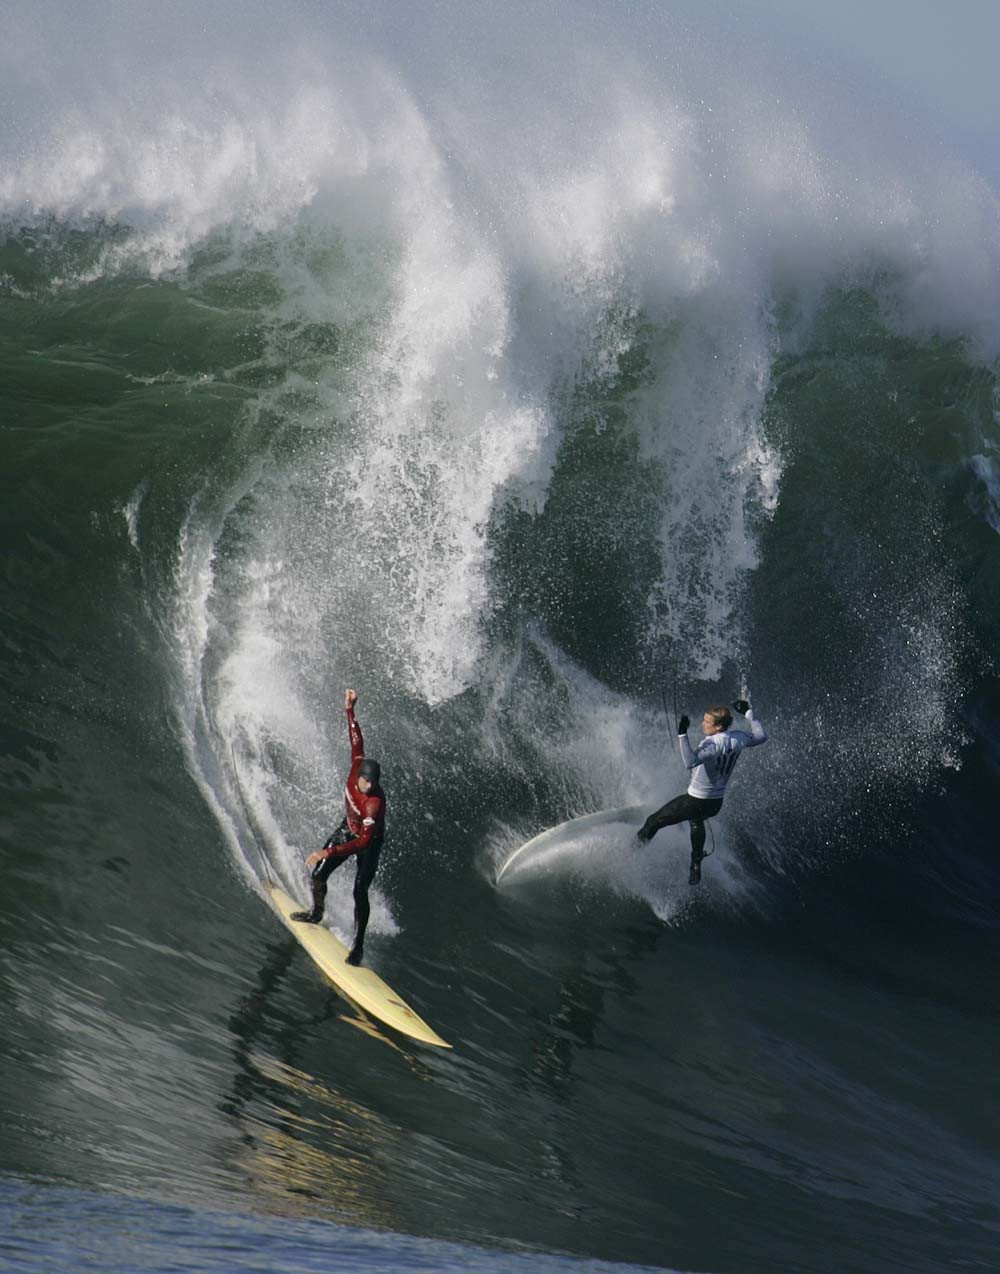 Ben Margot/2008 AP file photoThe Body Glove Mavericks Invitational is happening this weekend.